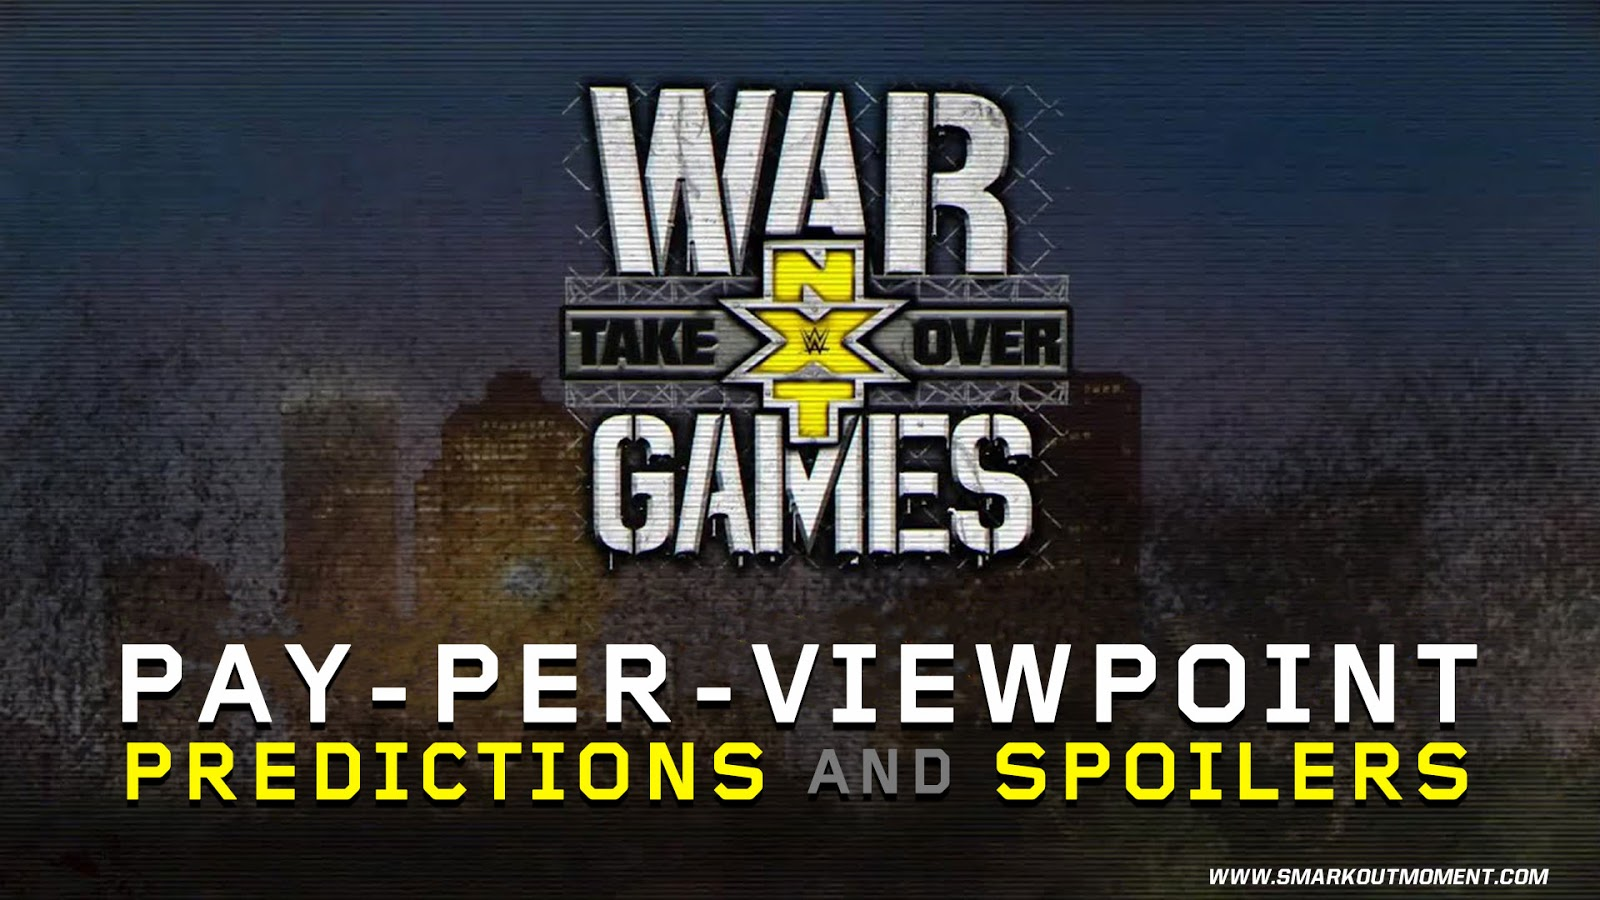 WWE NXT TAKEOVER: WARGAMES spoilers podcast